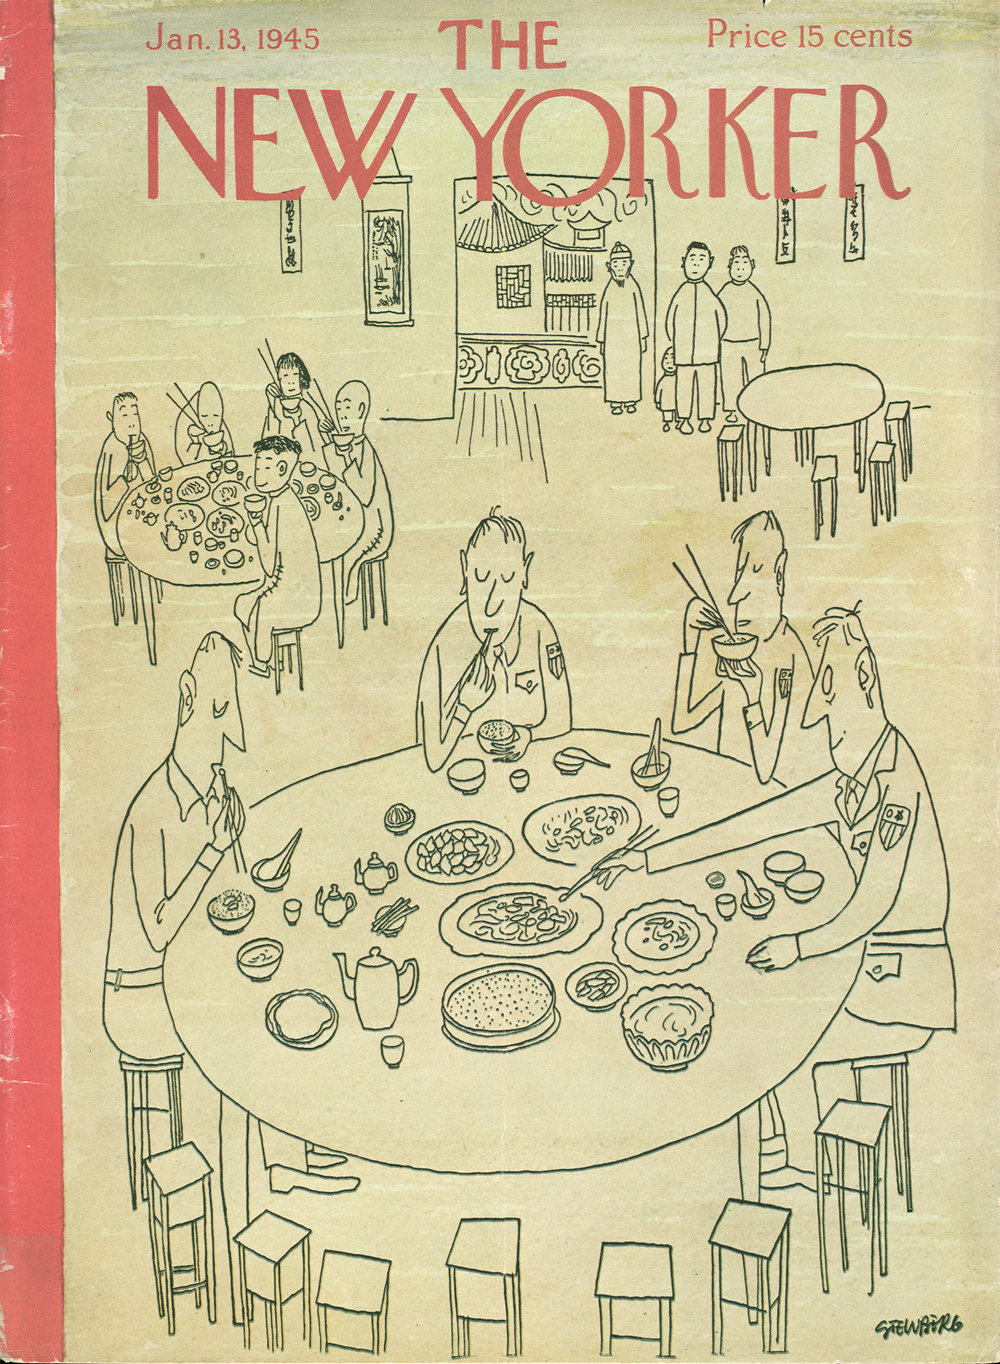 Steinberg's first published New Yorker cover. After immigrating to the United States, he enlisted in the army and was sent to China as an intelligence officer. via  The New Yorker